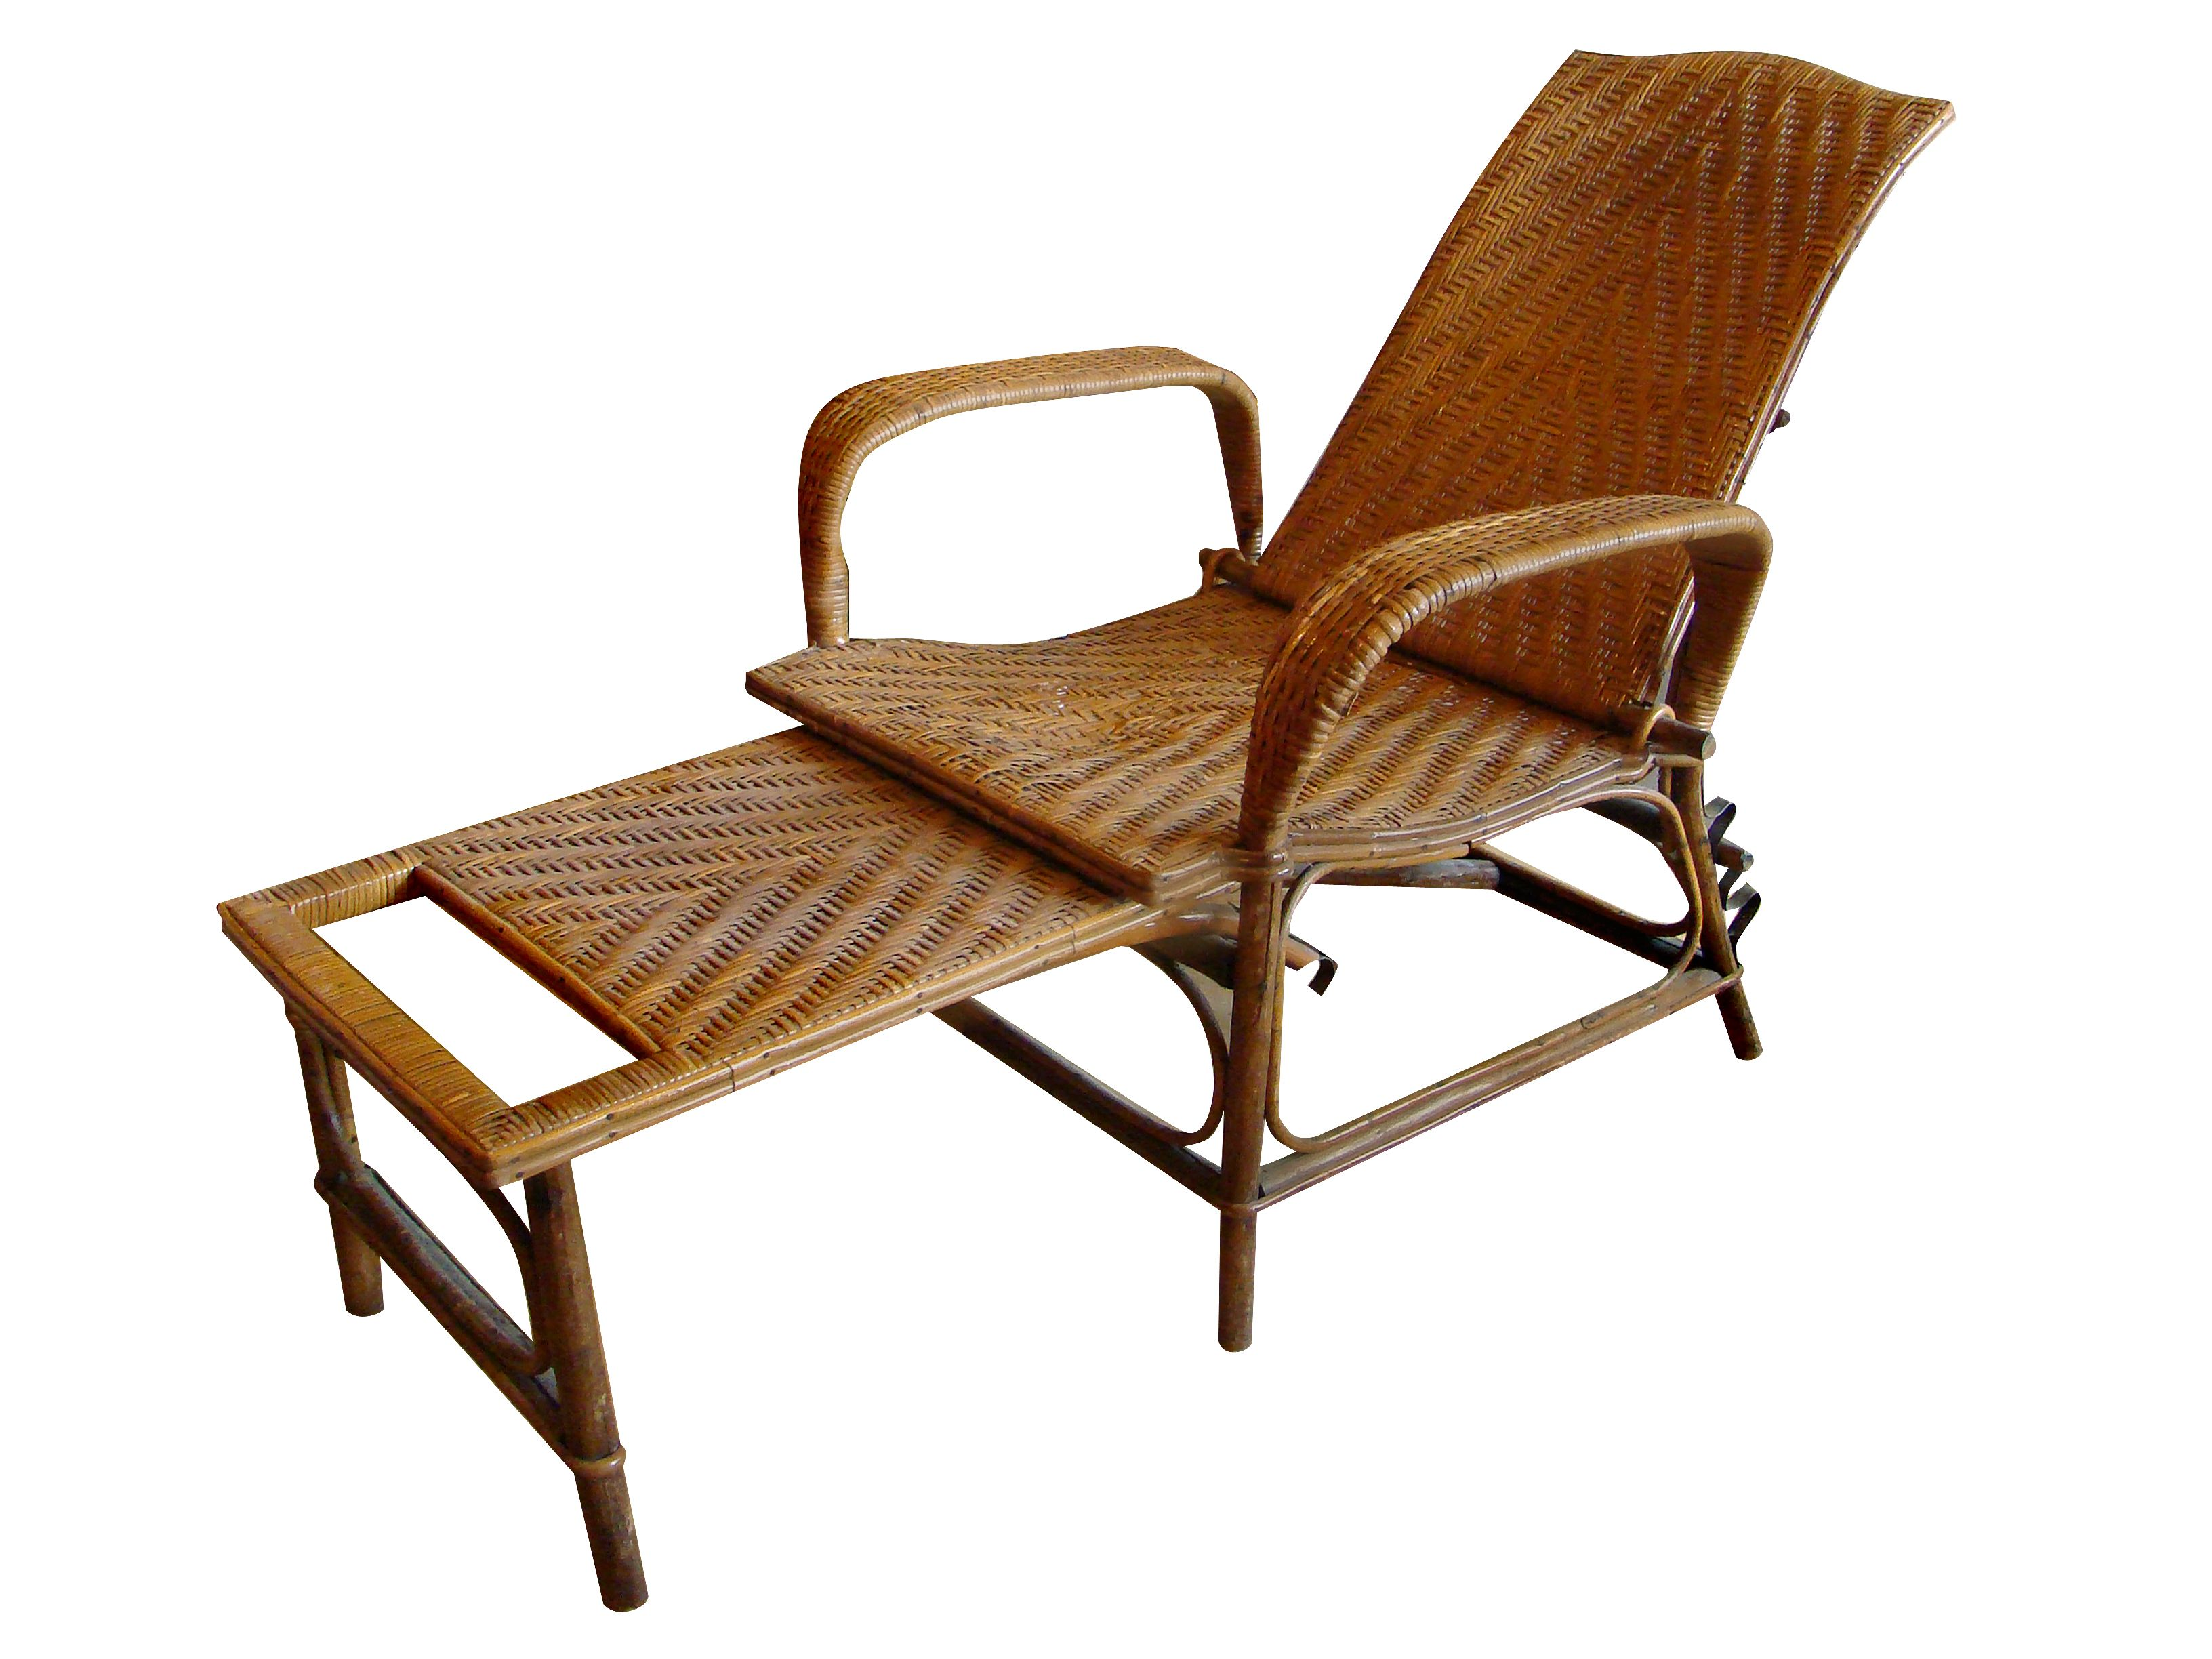 Vintage Rattan and Bamboo Chaise Lounge